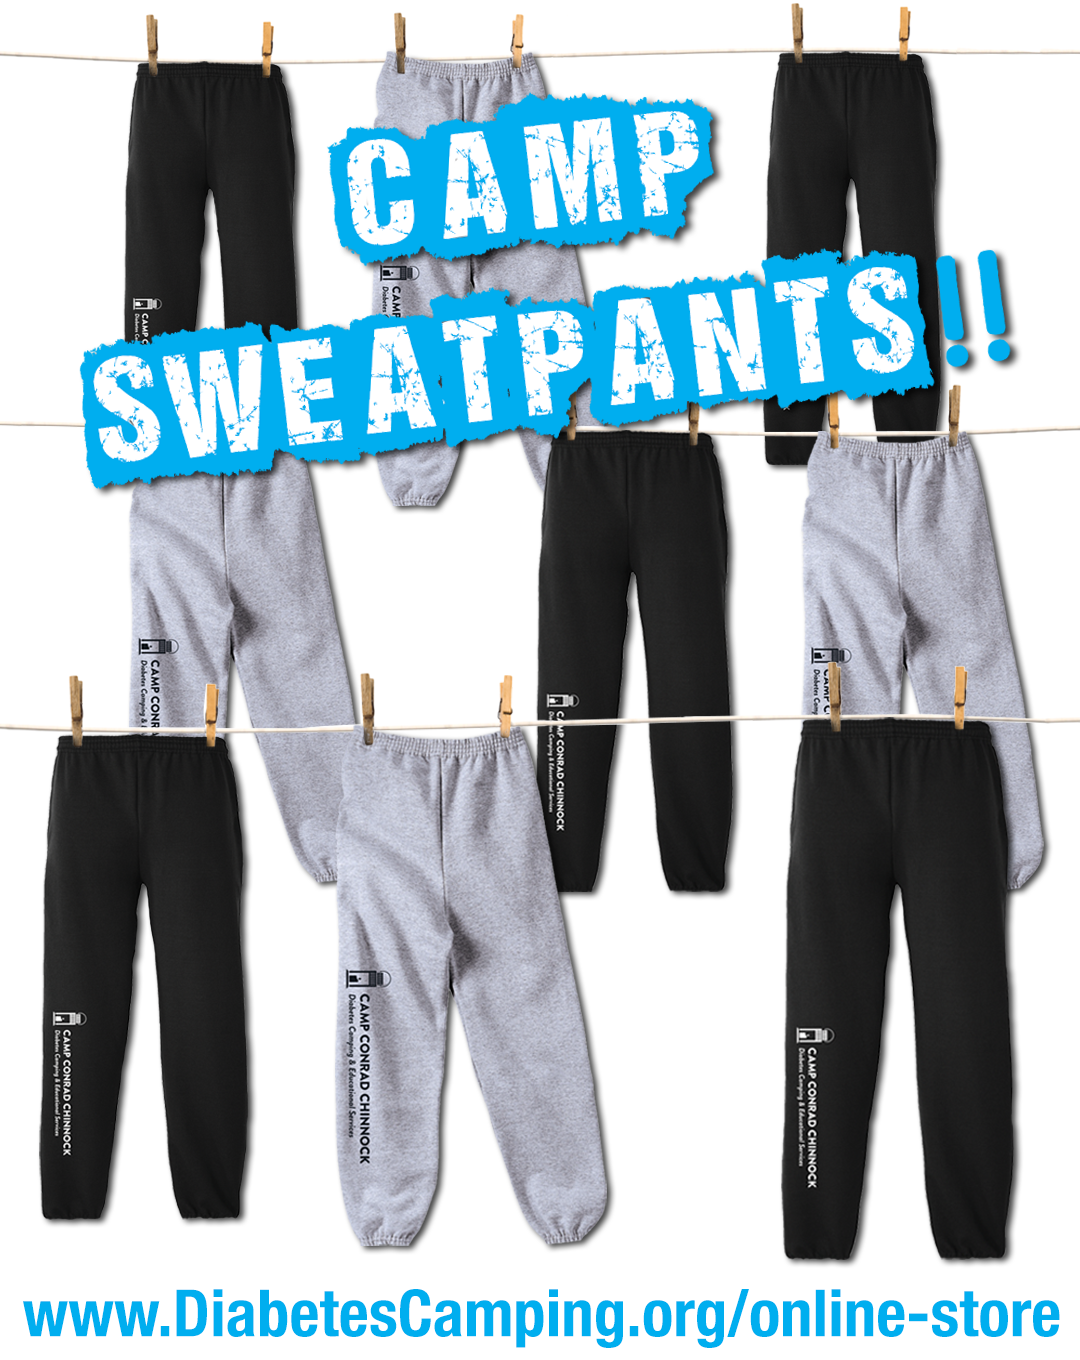 Adult Size Sweatpants